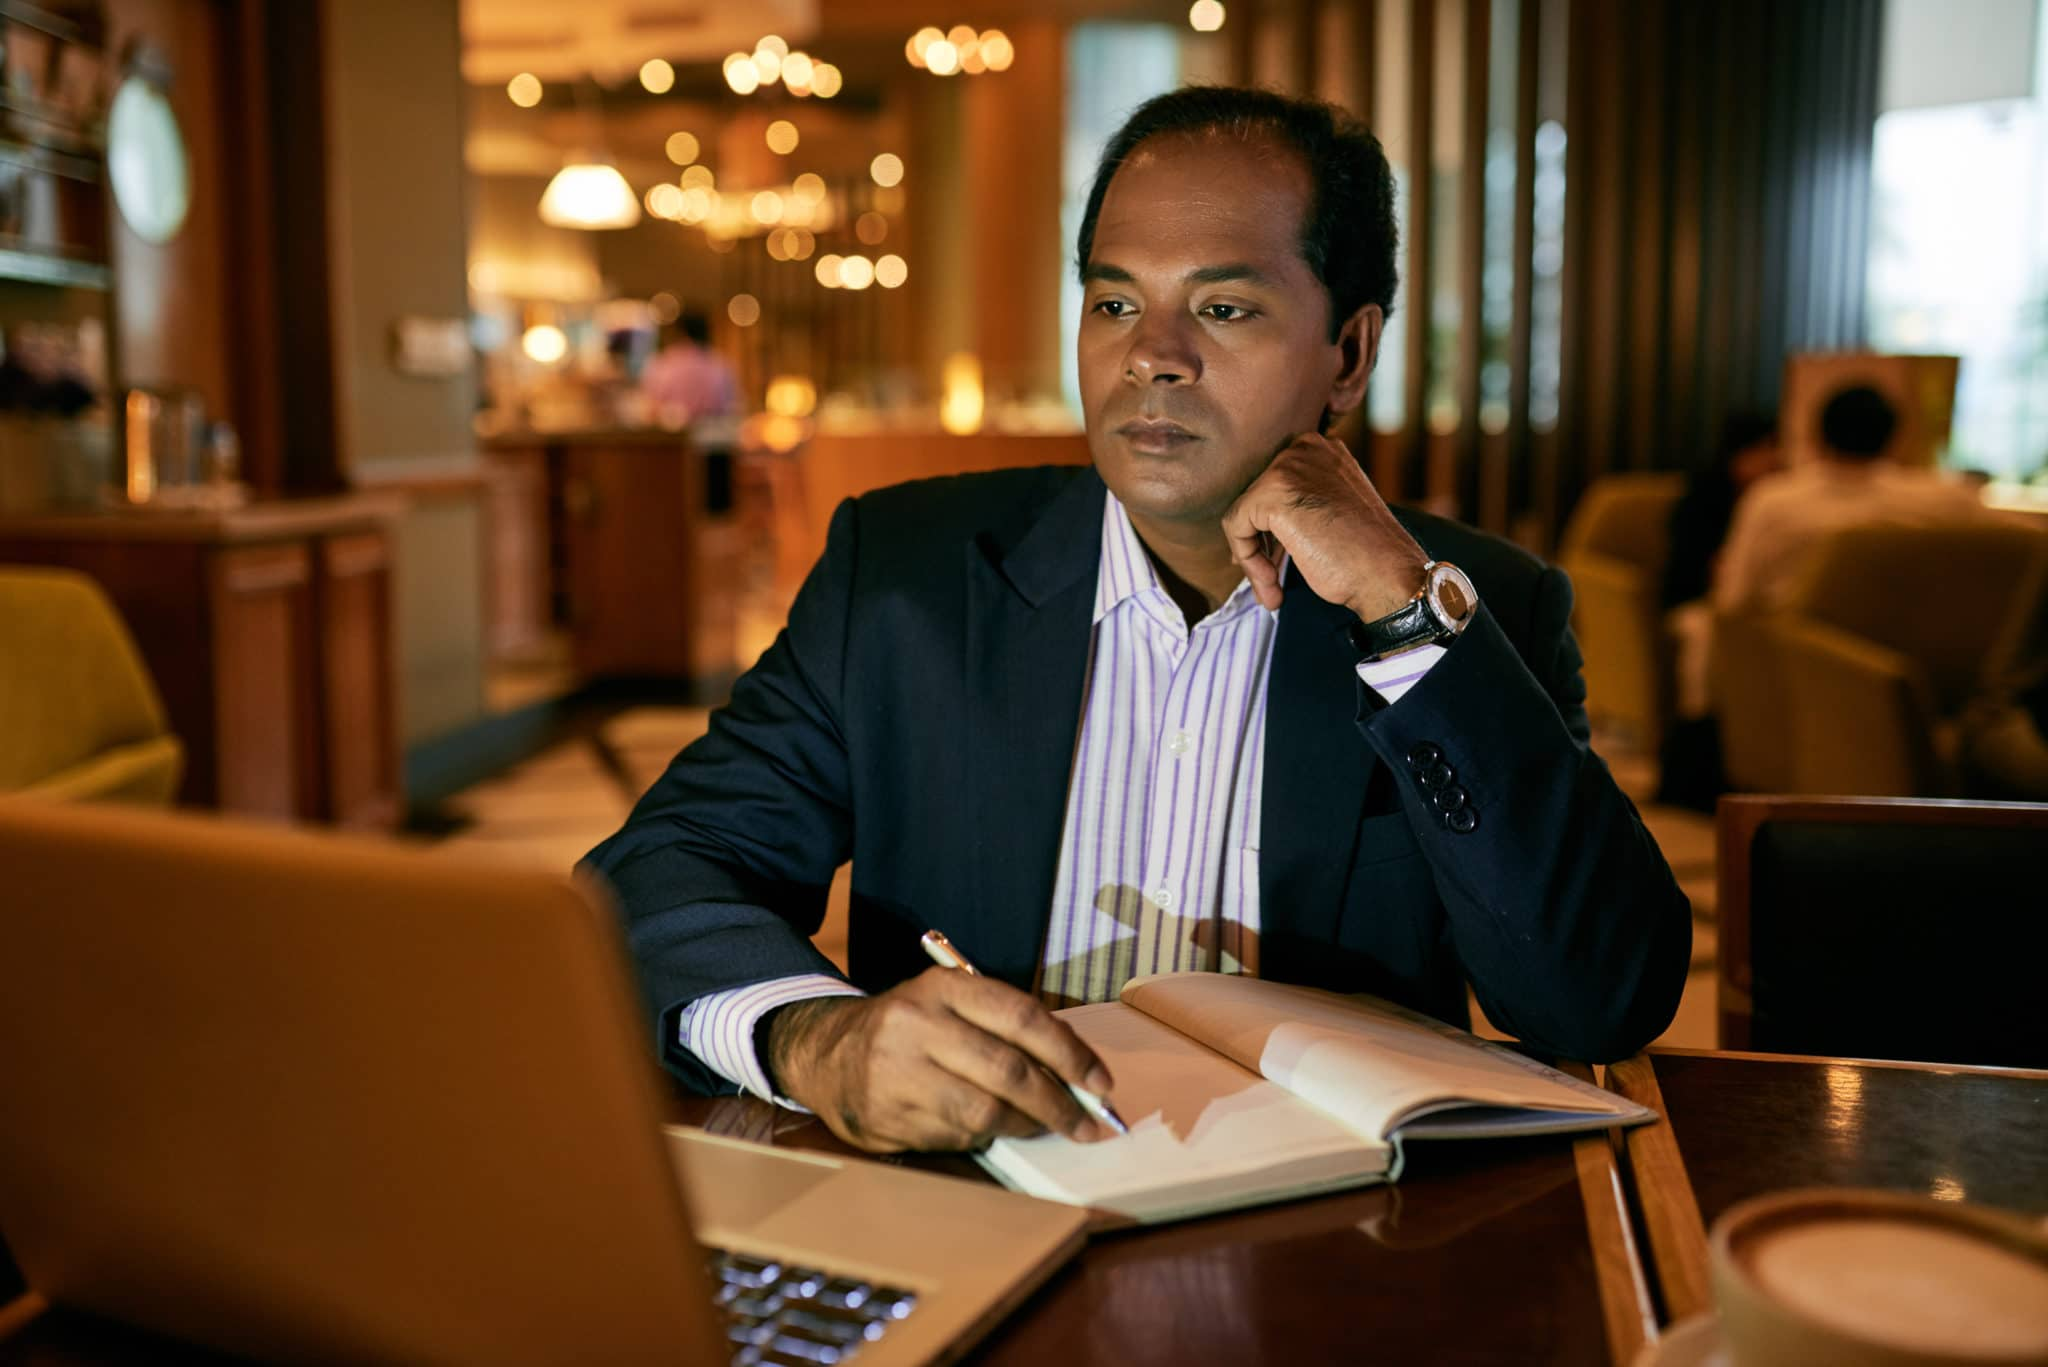 Business executive working on laptop in restaurant